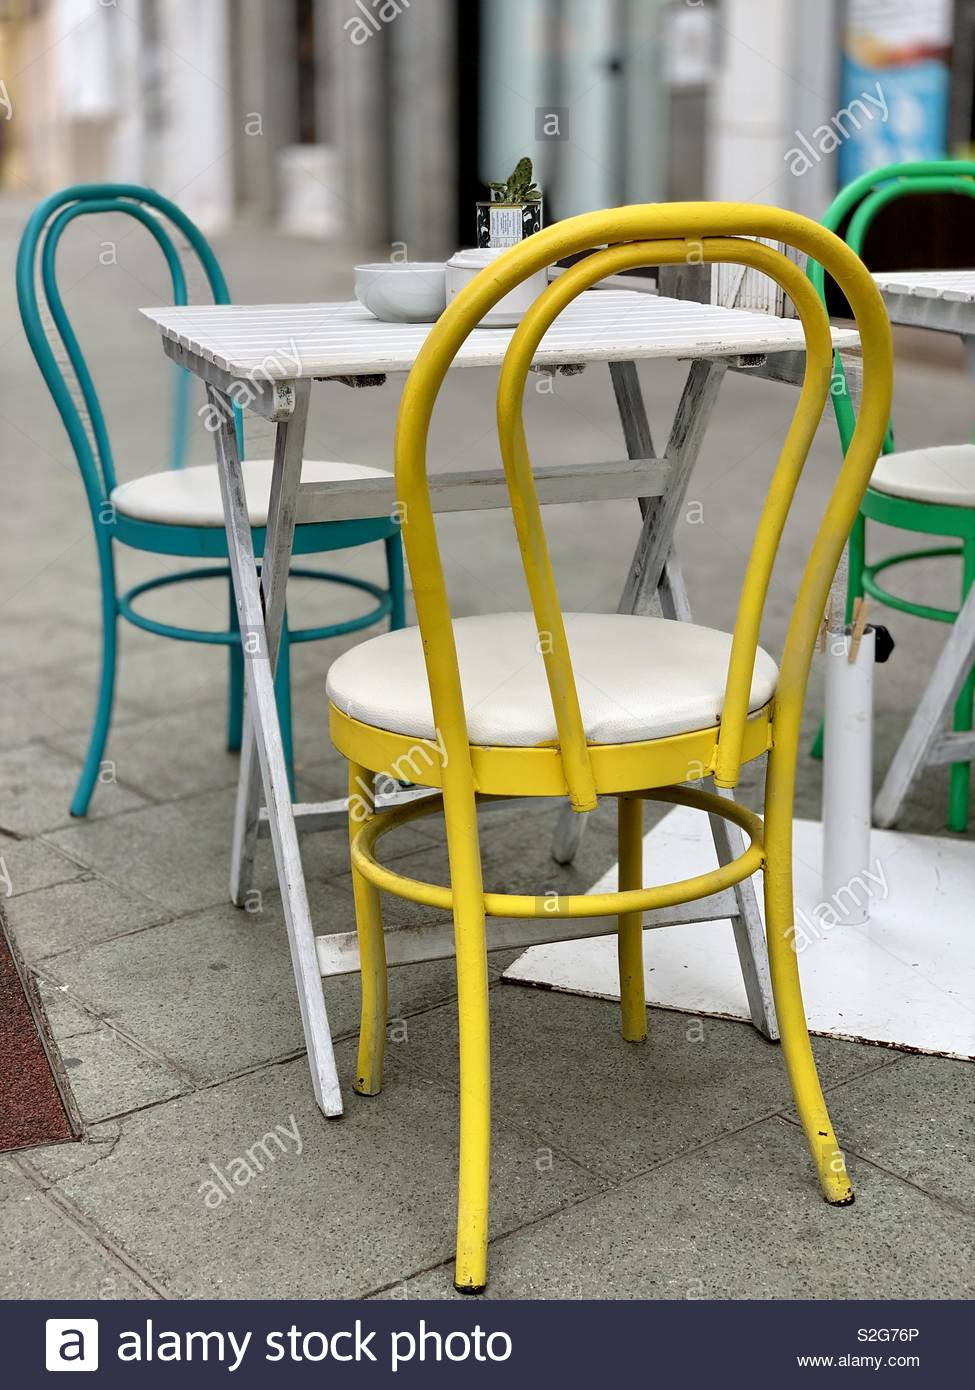 Metal Chairs Yellow Blue And Green Metal Chairs And White Table On The Street